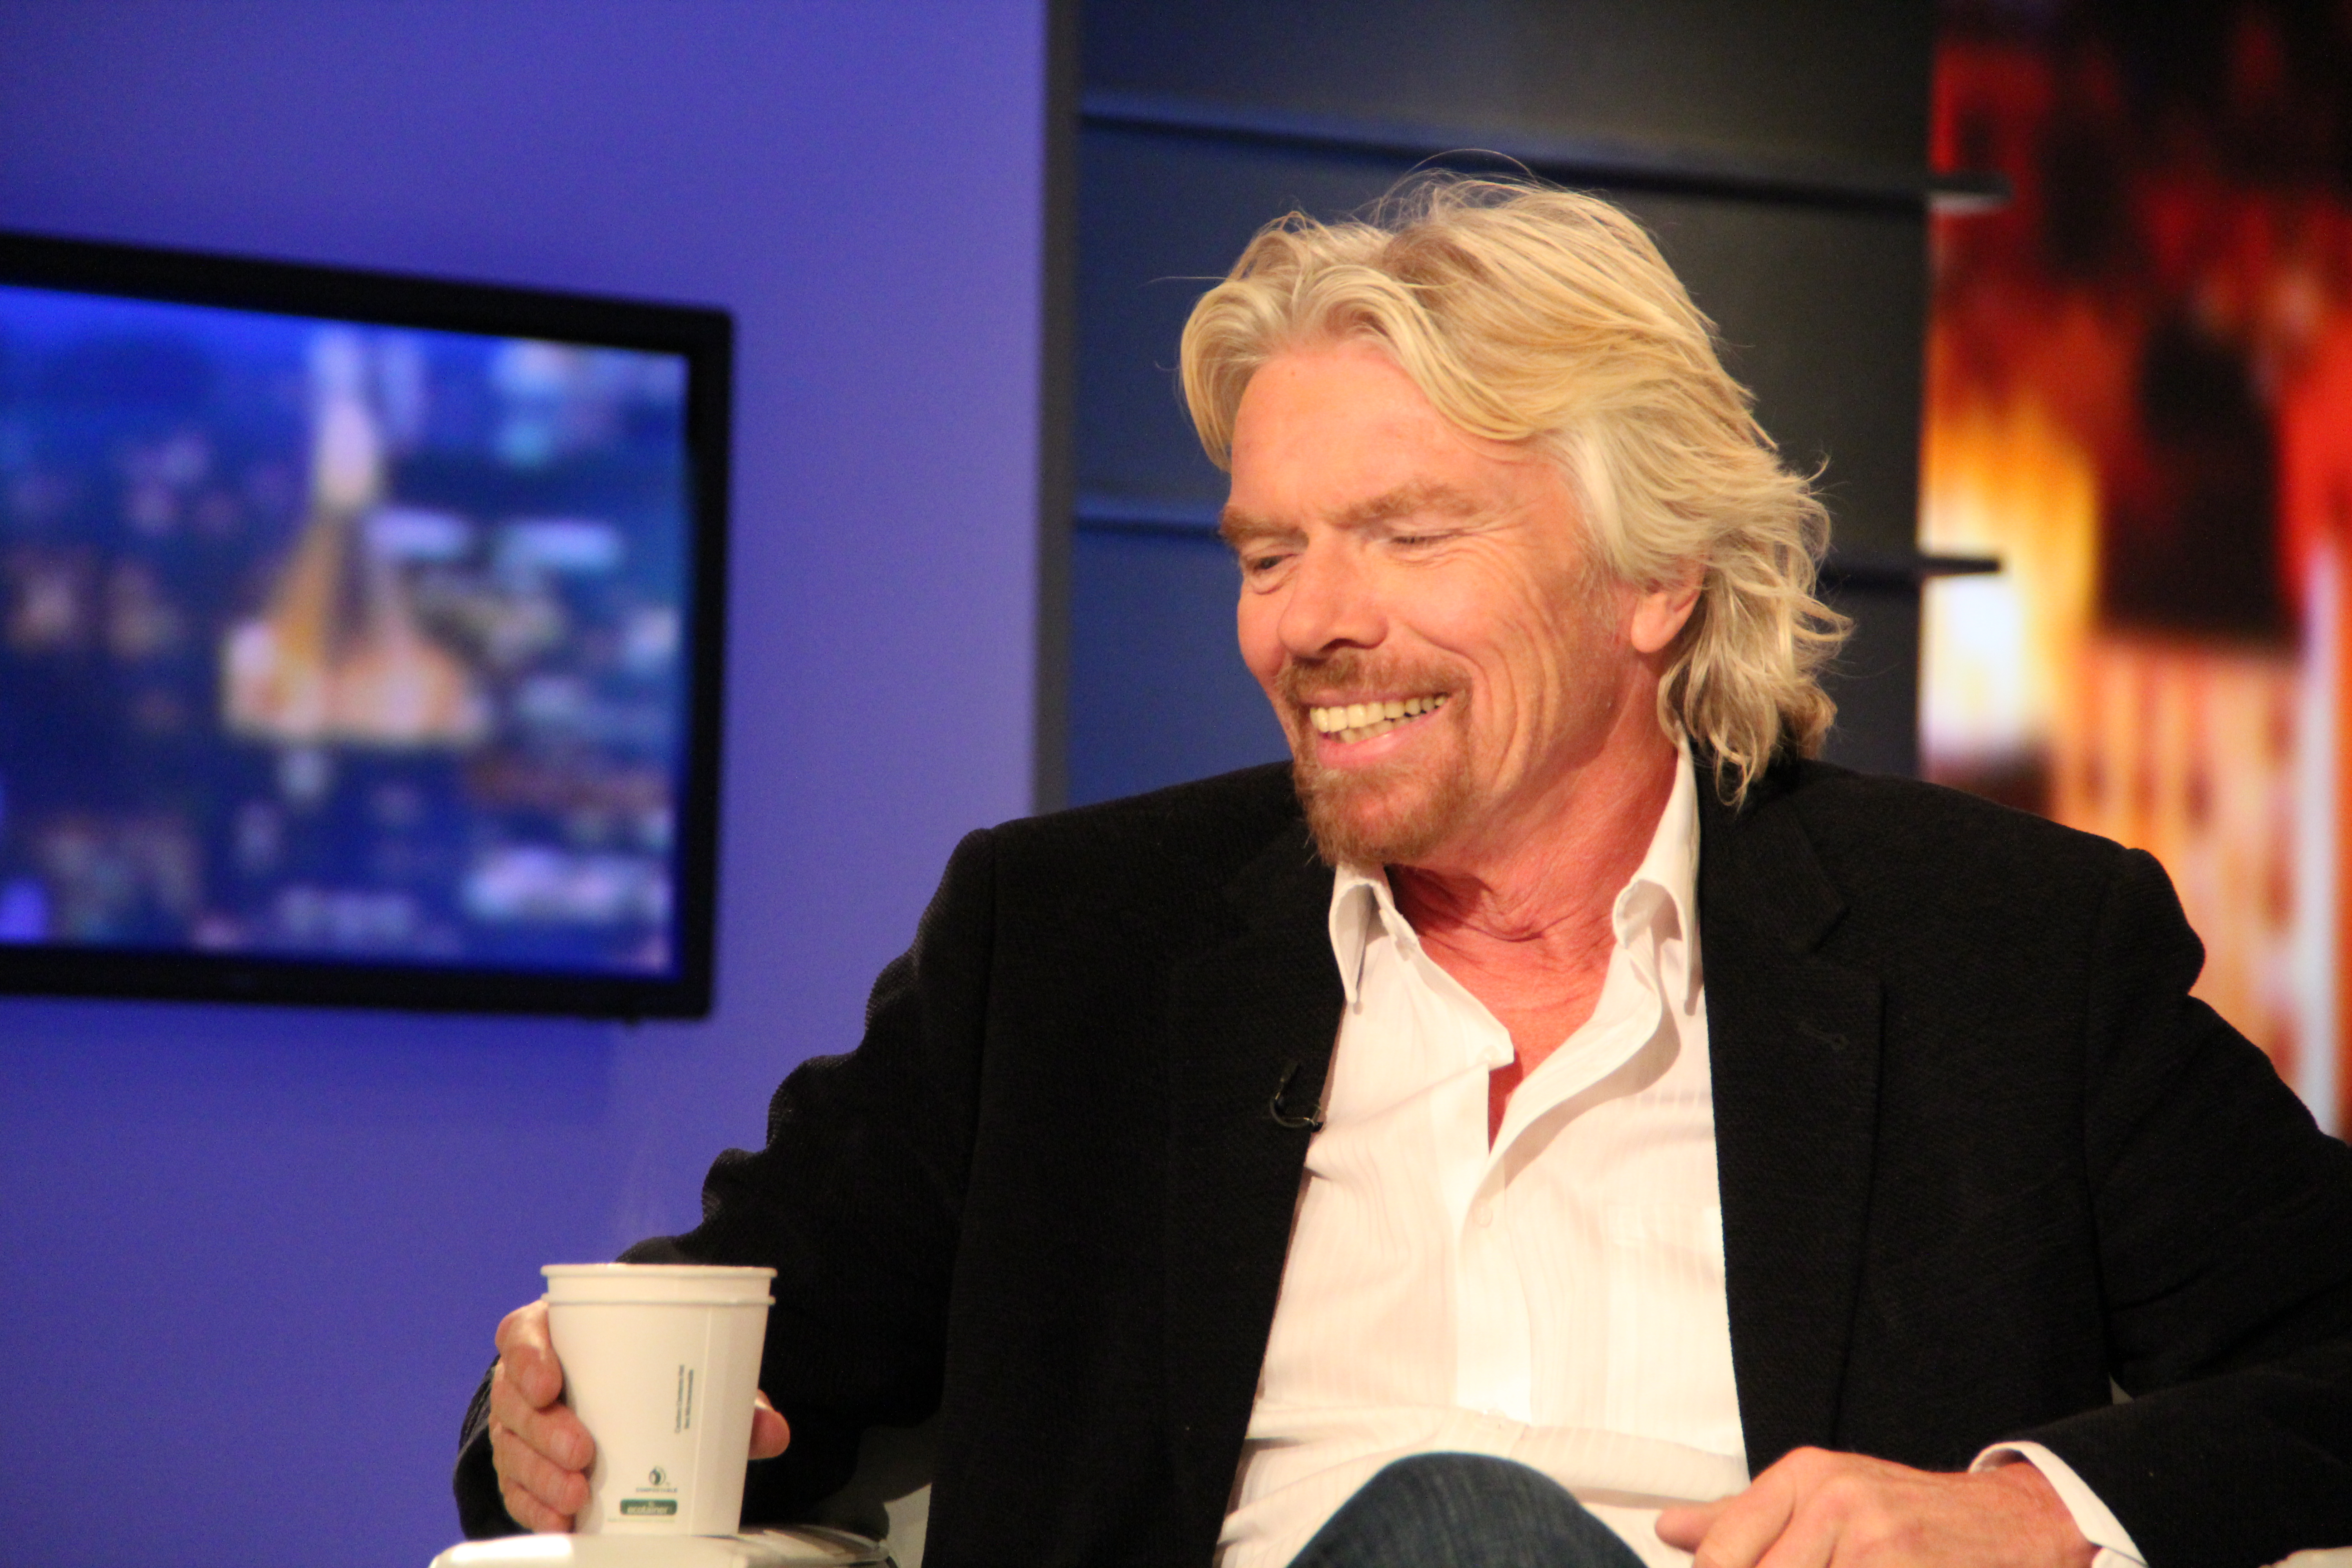 Richard Branson: &#039;The best businesses are born out of frustration&#039;